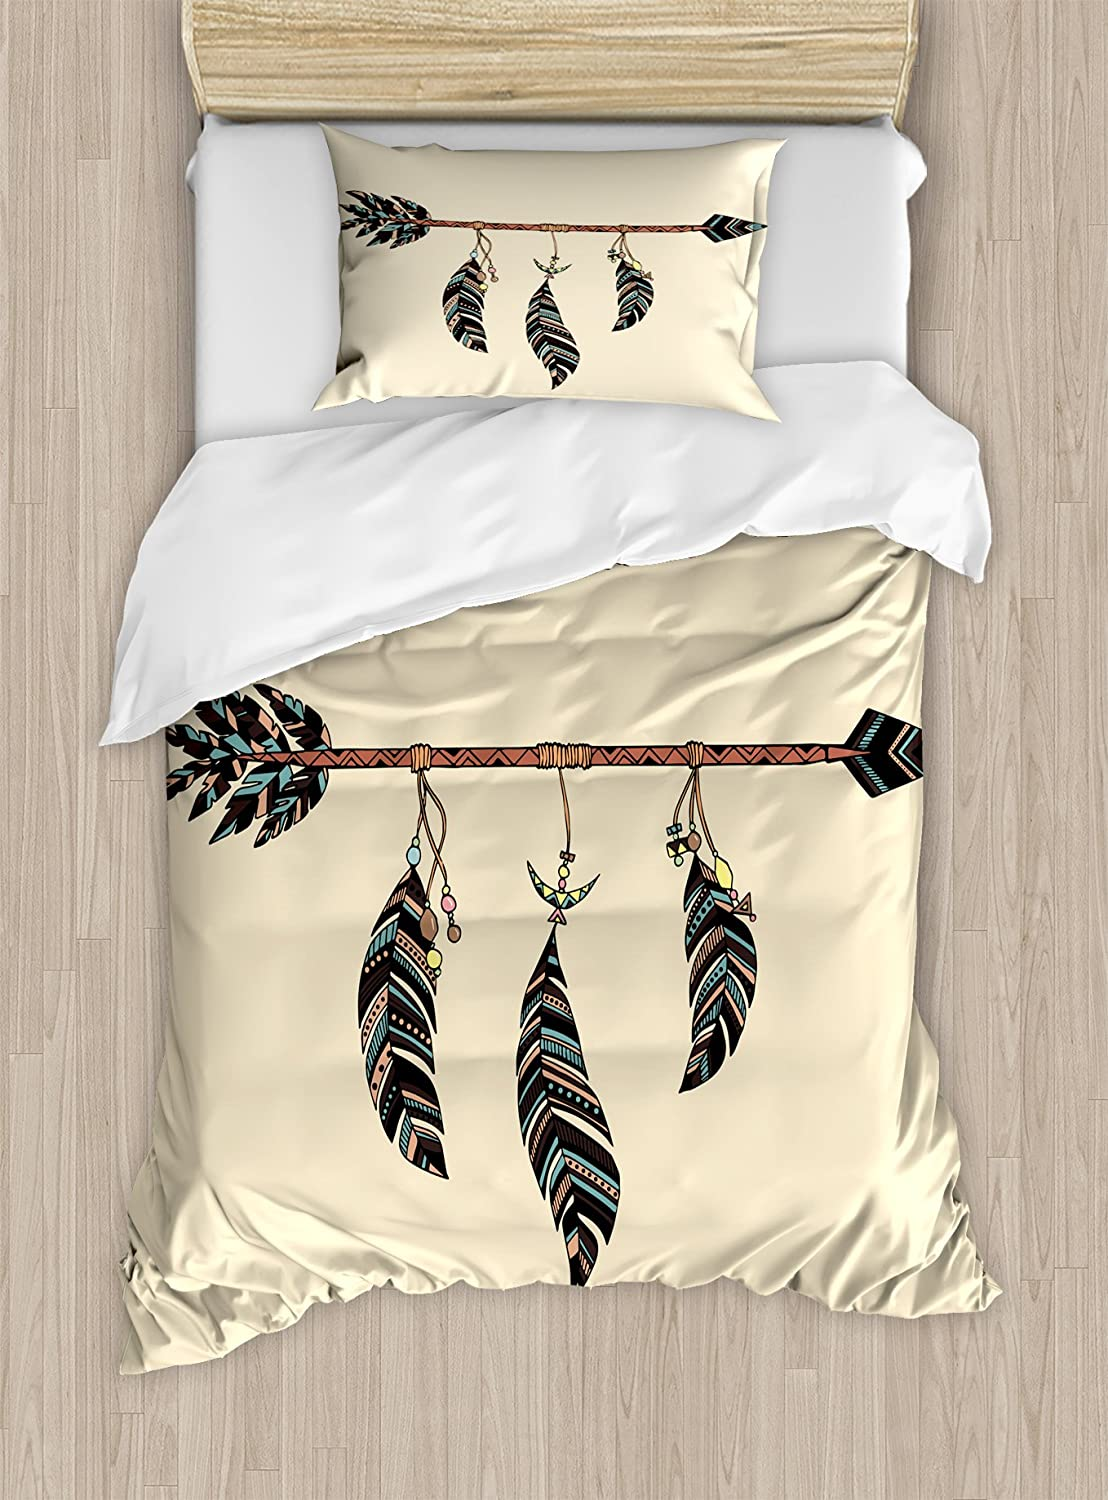 Arrow Decor Duvet Cover Set by Ambesonne, Arrow in Ethnical Pattern With Feathers Decorative Native Tribal Print, 2 Piece Bedding Set with 1 Pillow Sham, Twin / Twin XL Size